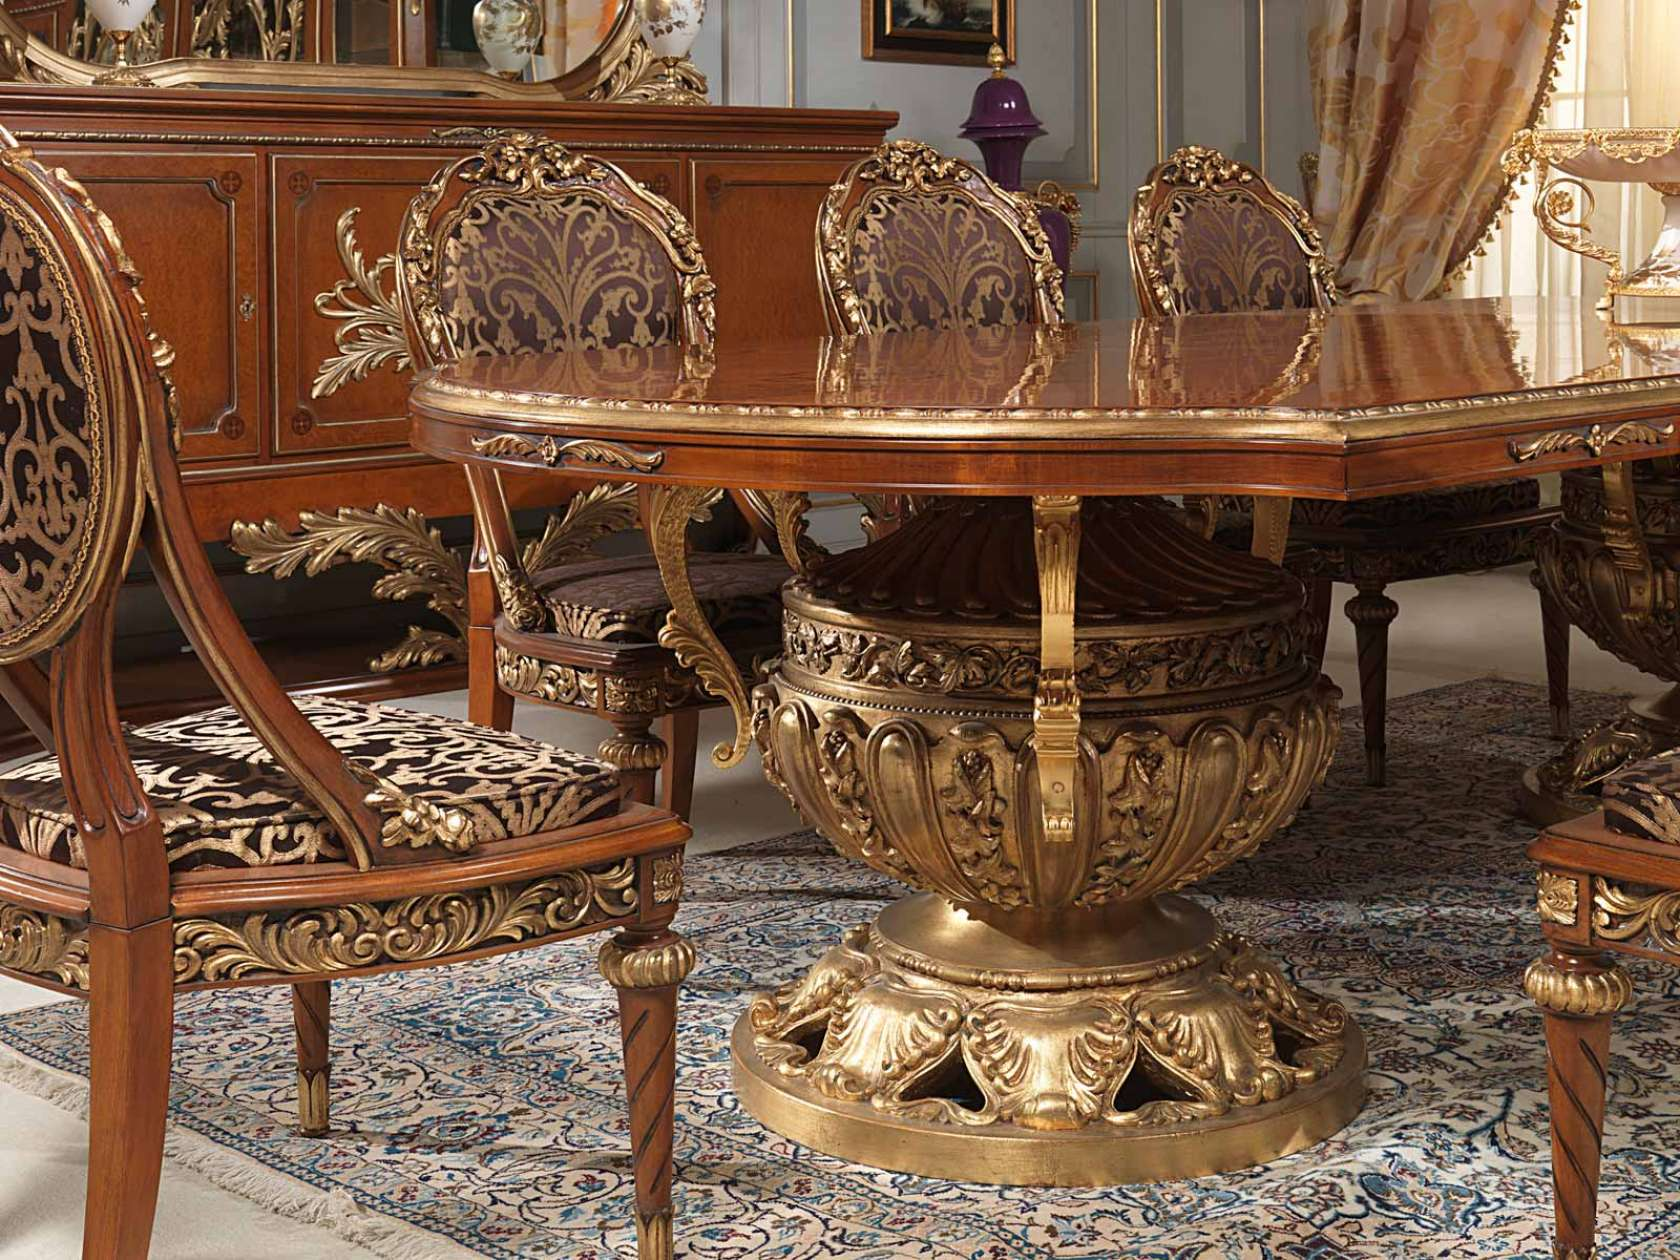 Table and chairs Versailles in Louis XVI style